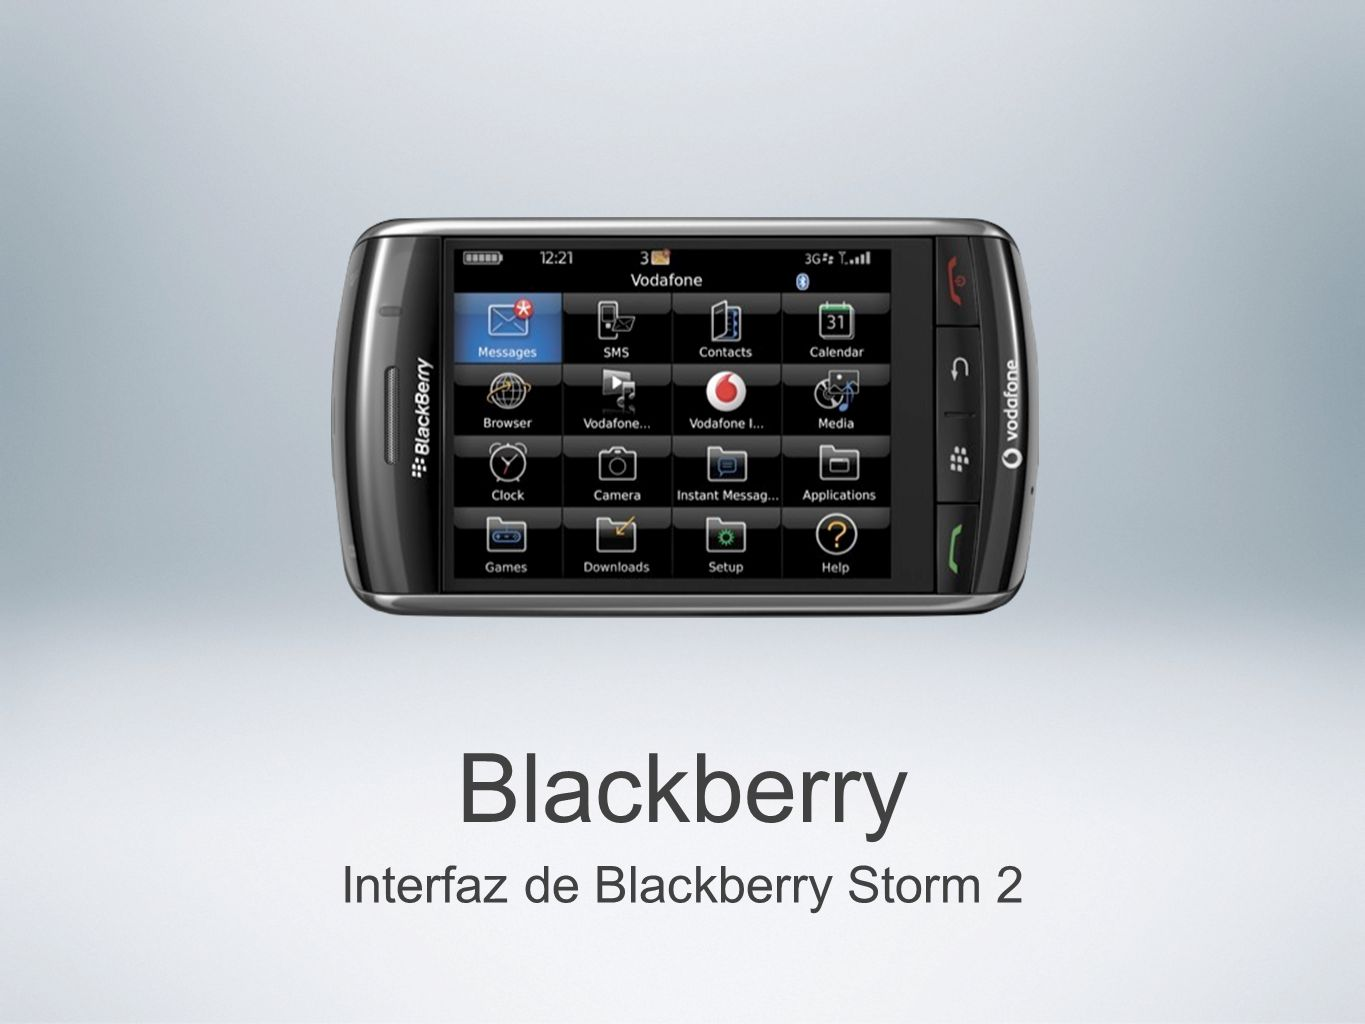 Interfaz de Blackberry Storm 2